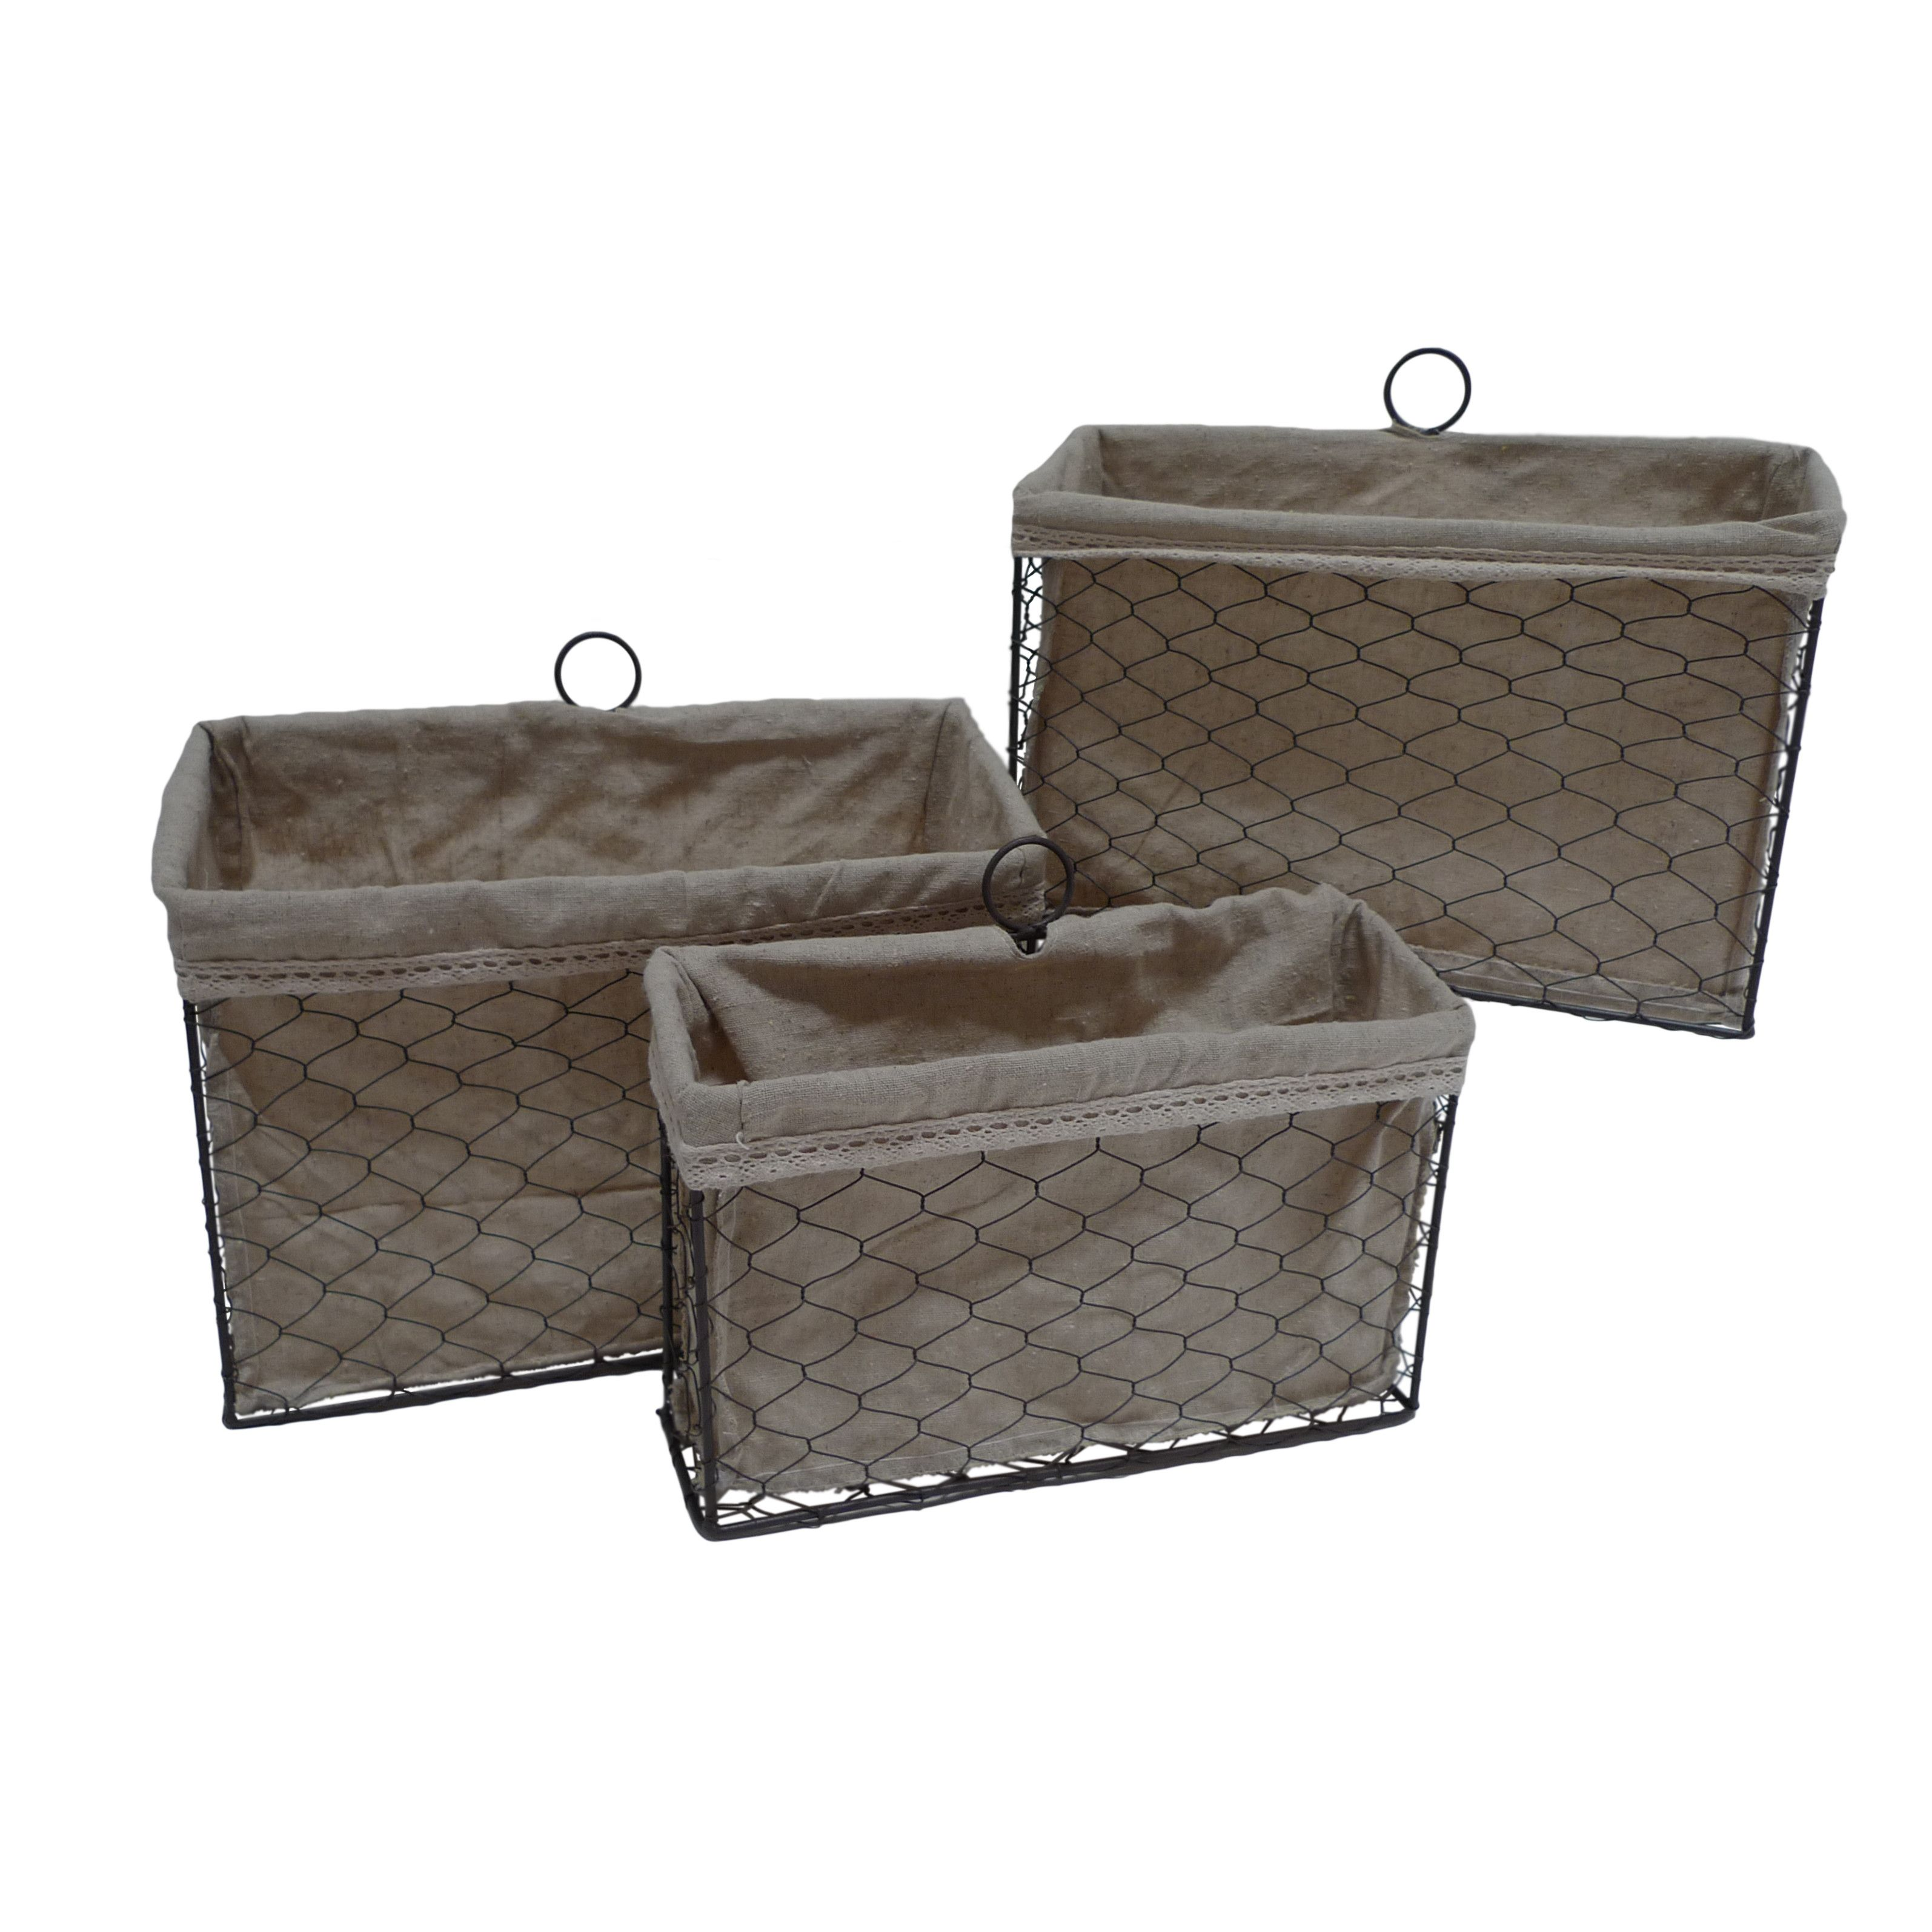 38.99 Cheungs 3 Piece Lined Wire Storage Basket Set